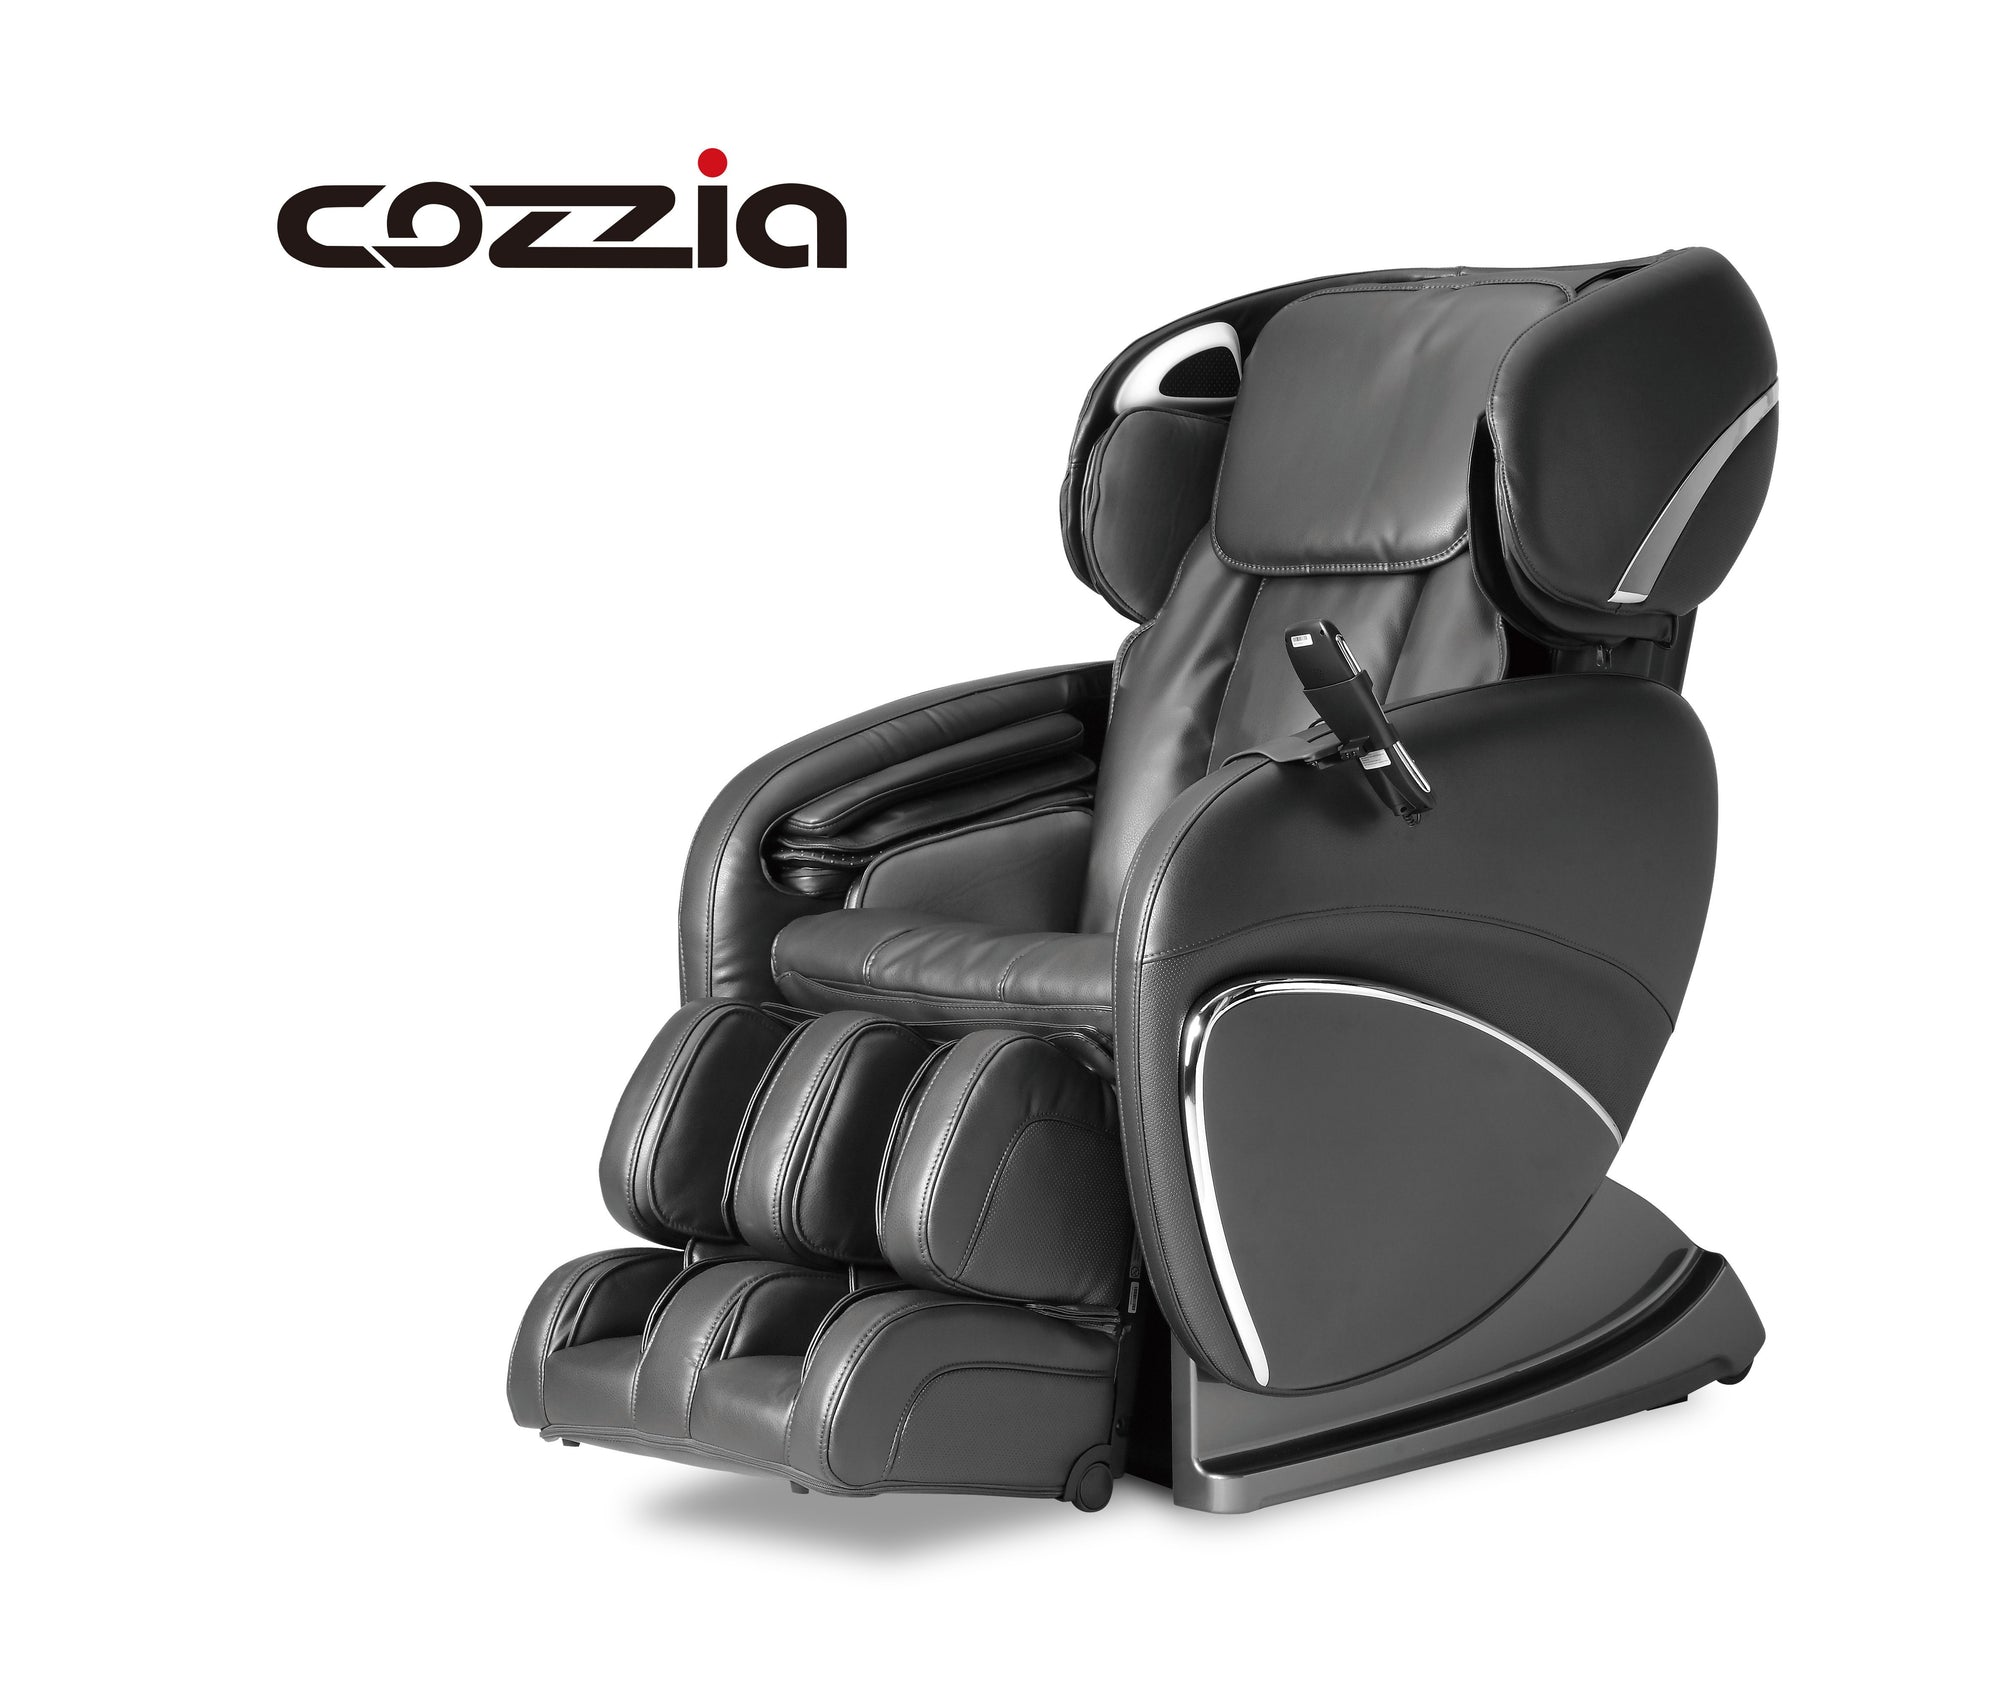 Cozzia EC-670 DzeroG Massage Chair Massage Chair Cozzia